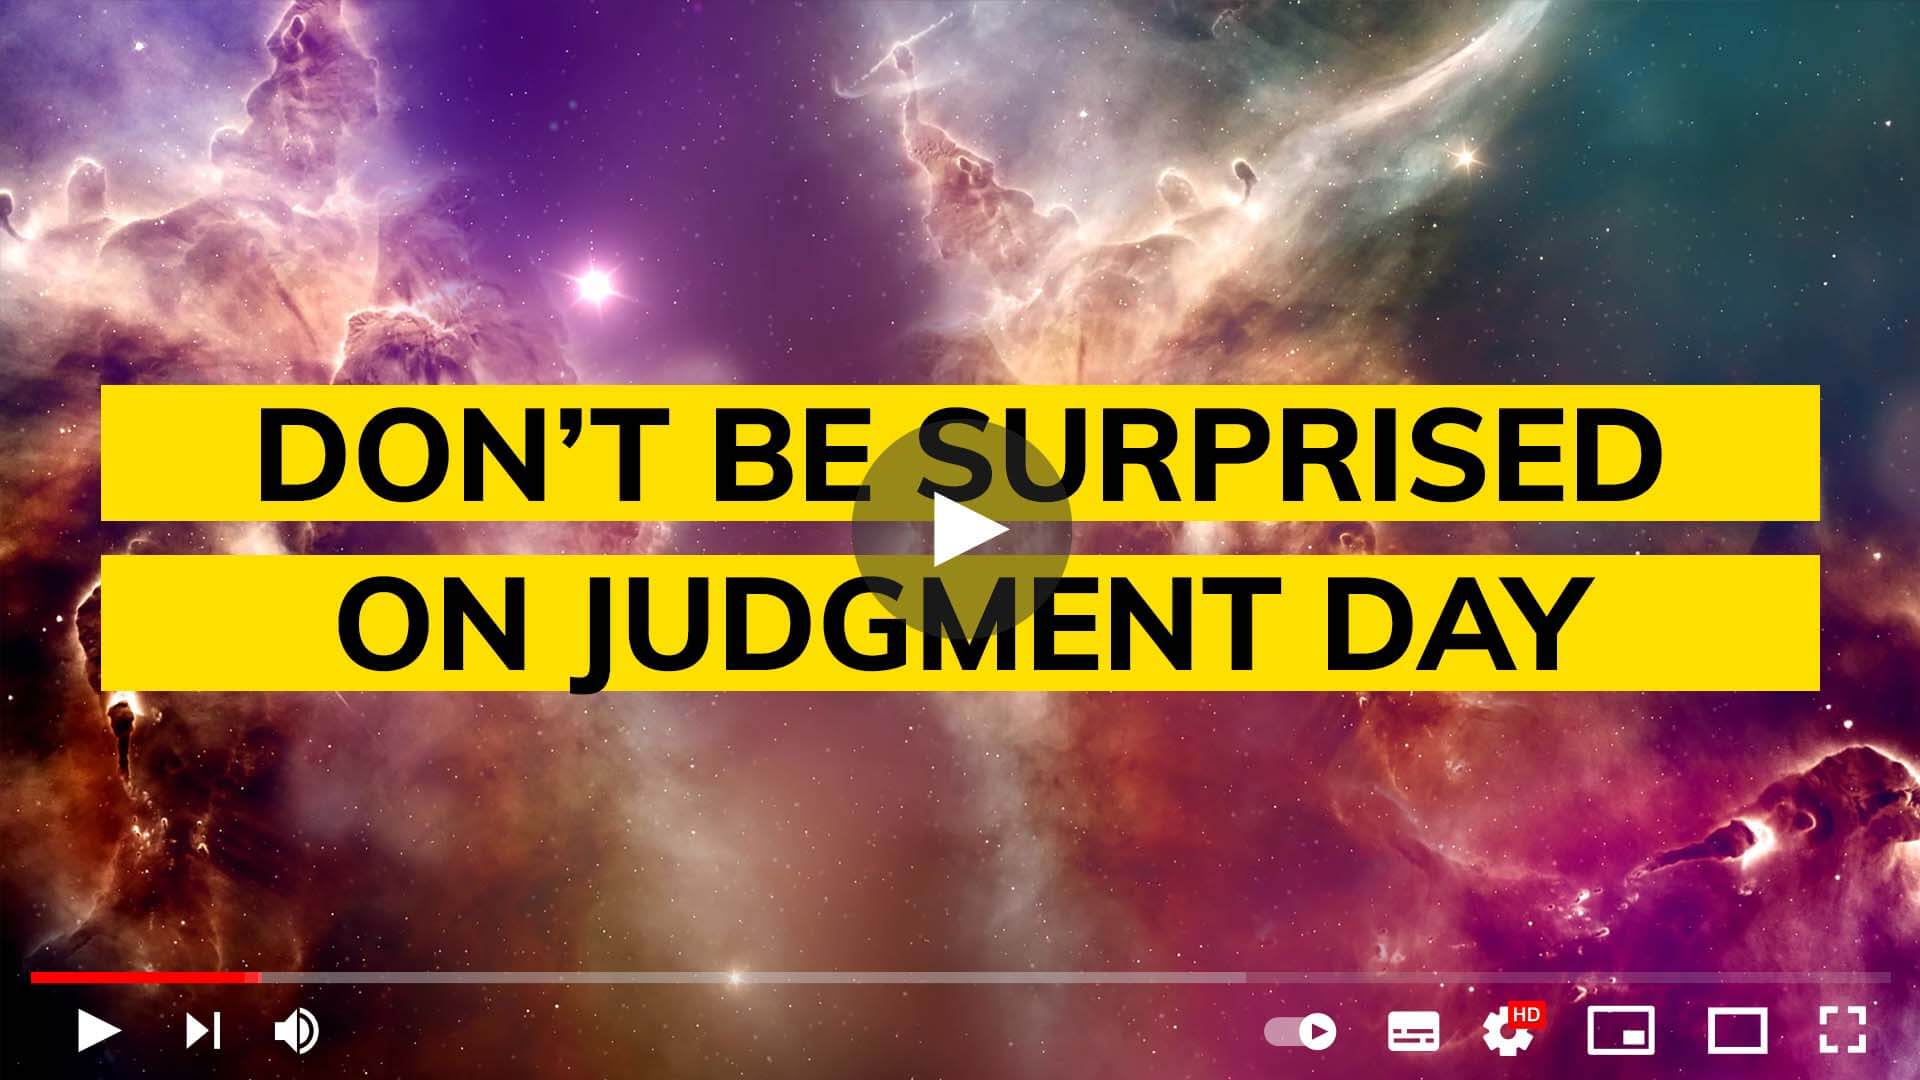 Don't be surprised on judgment day